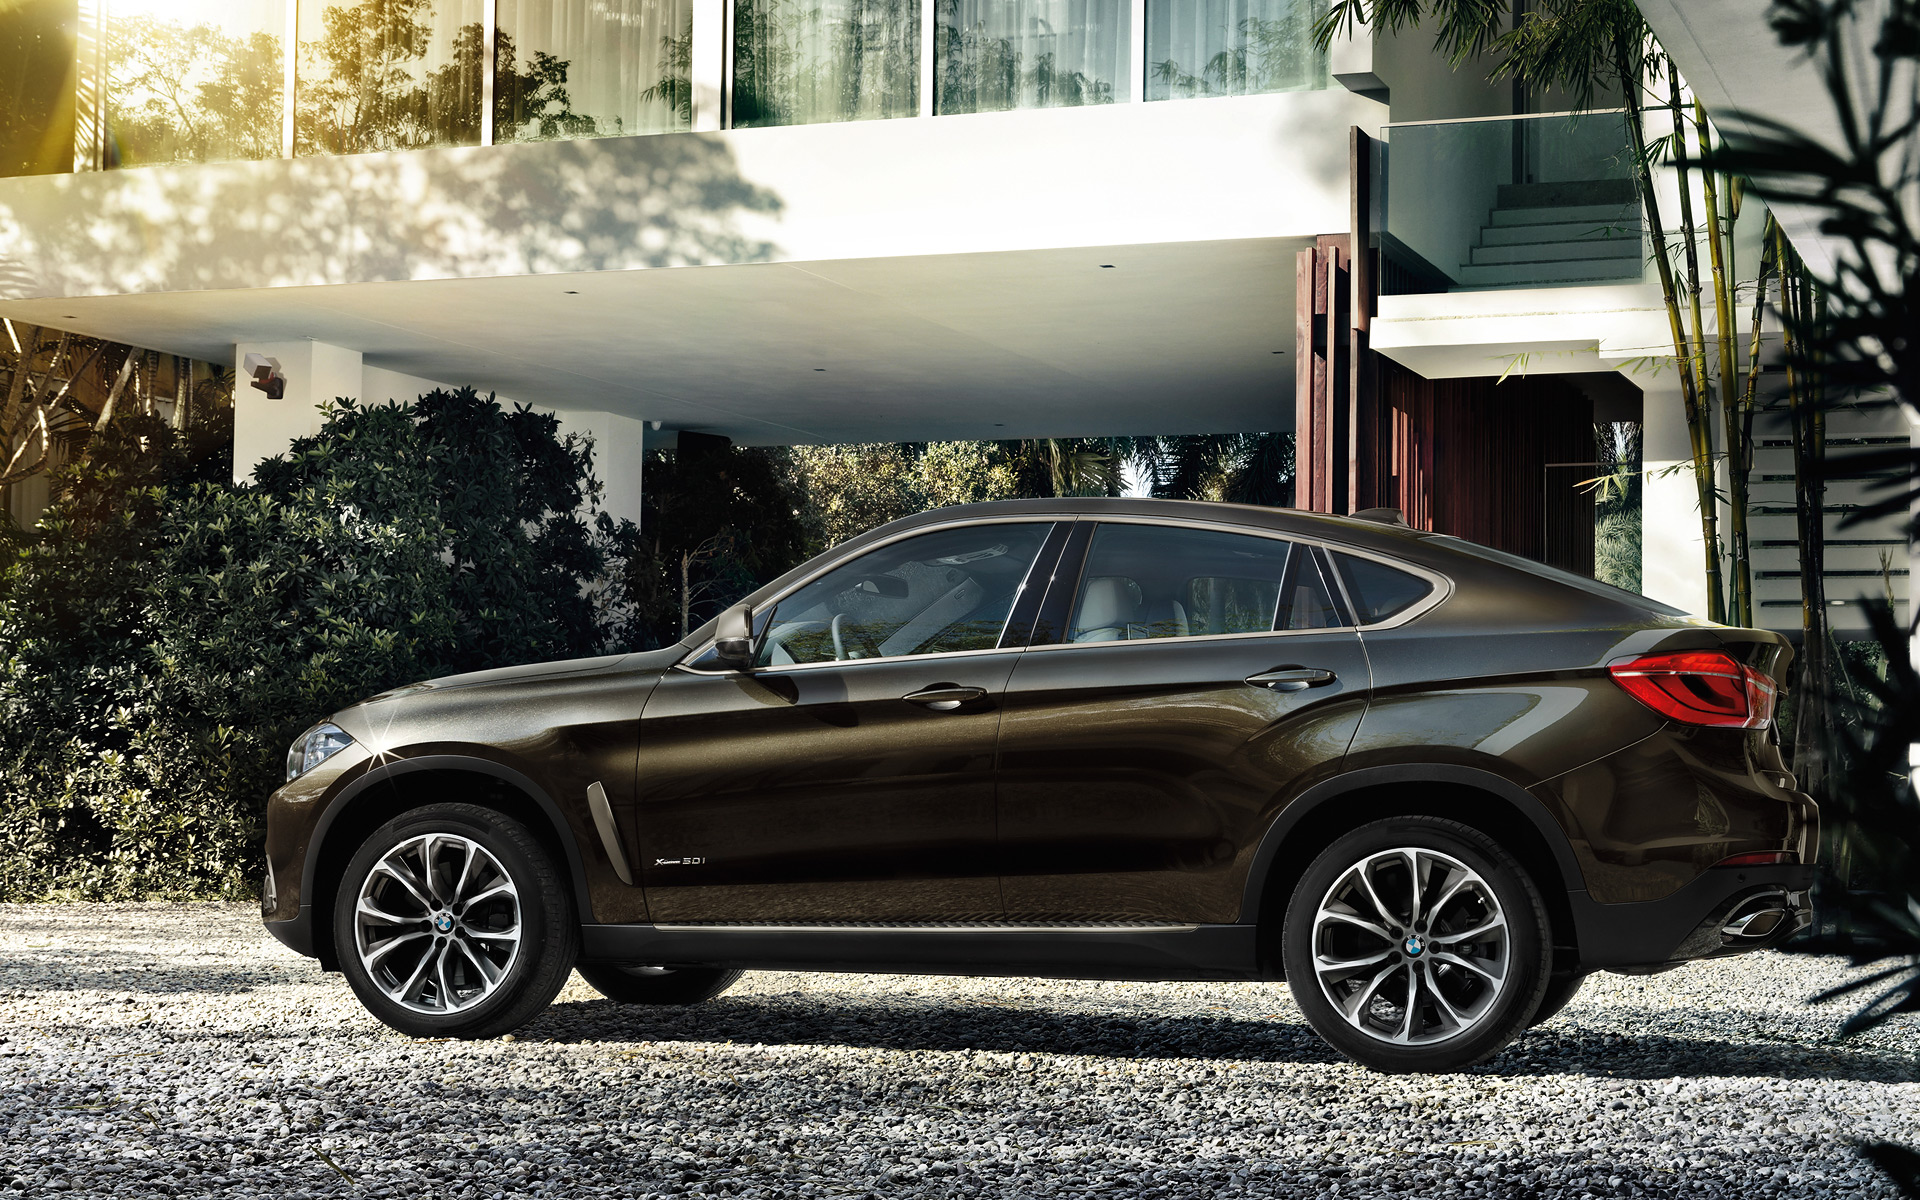 BMW-X6-cartec-group-4.jpg